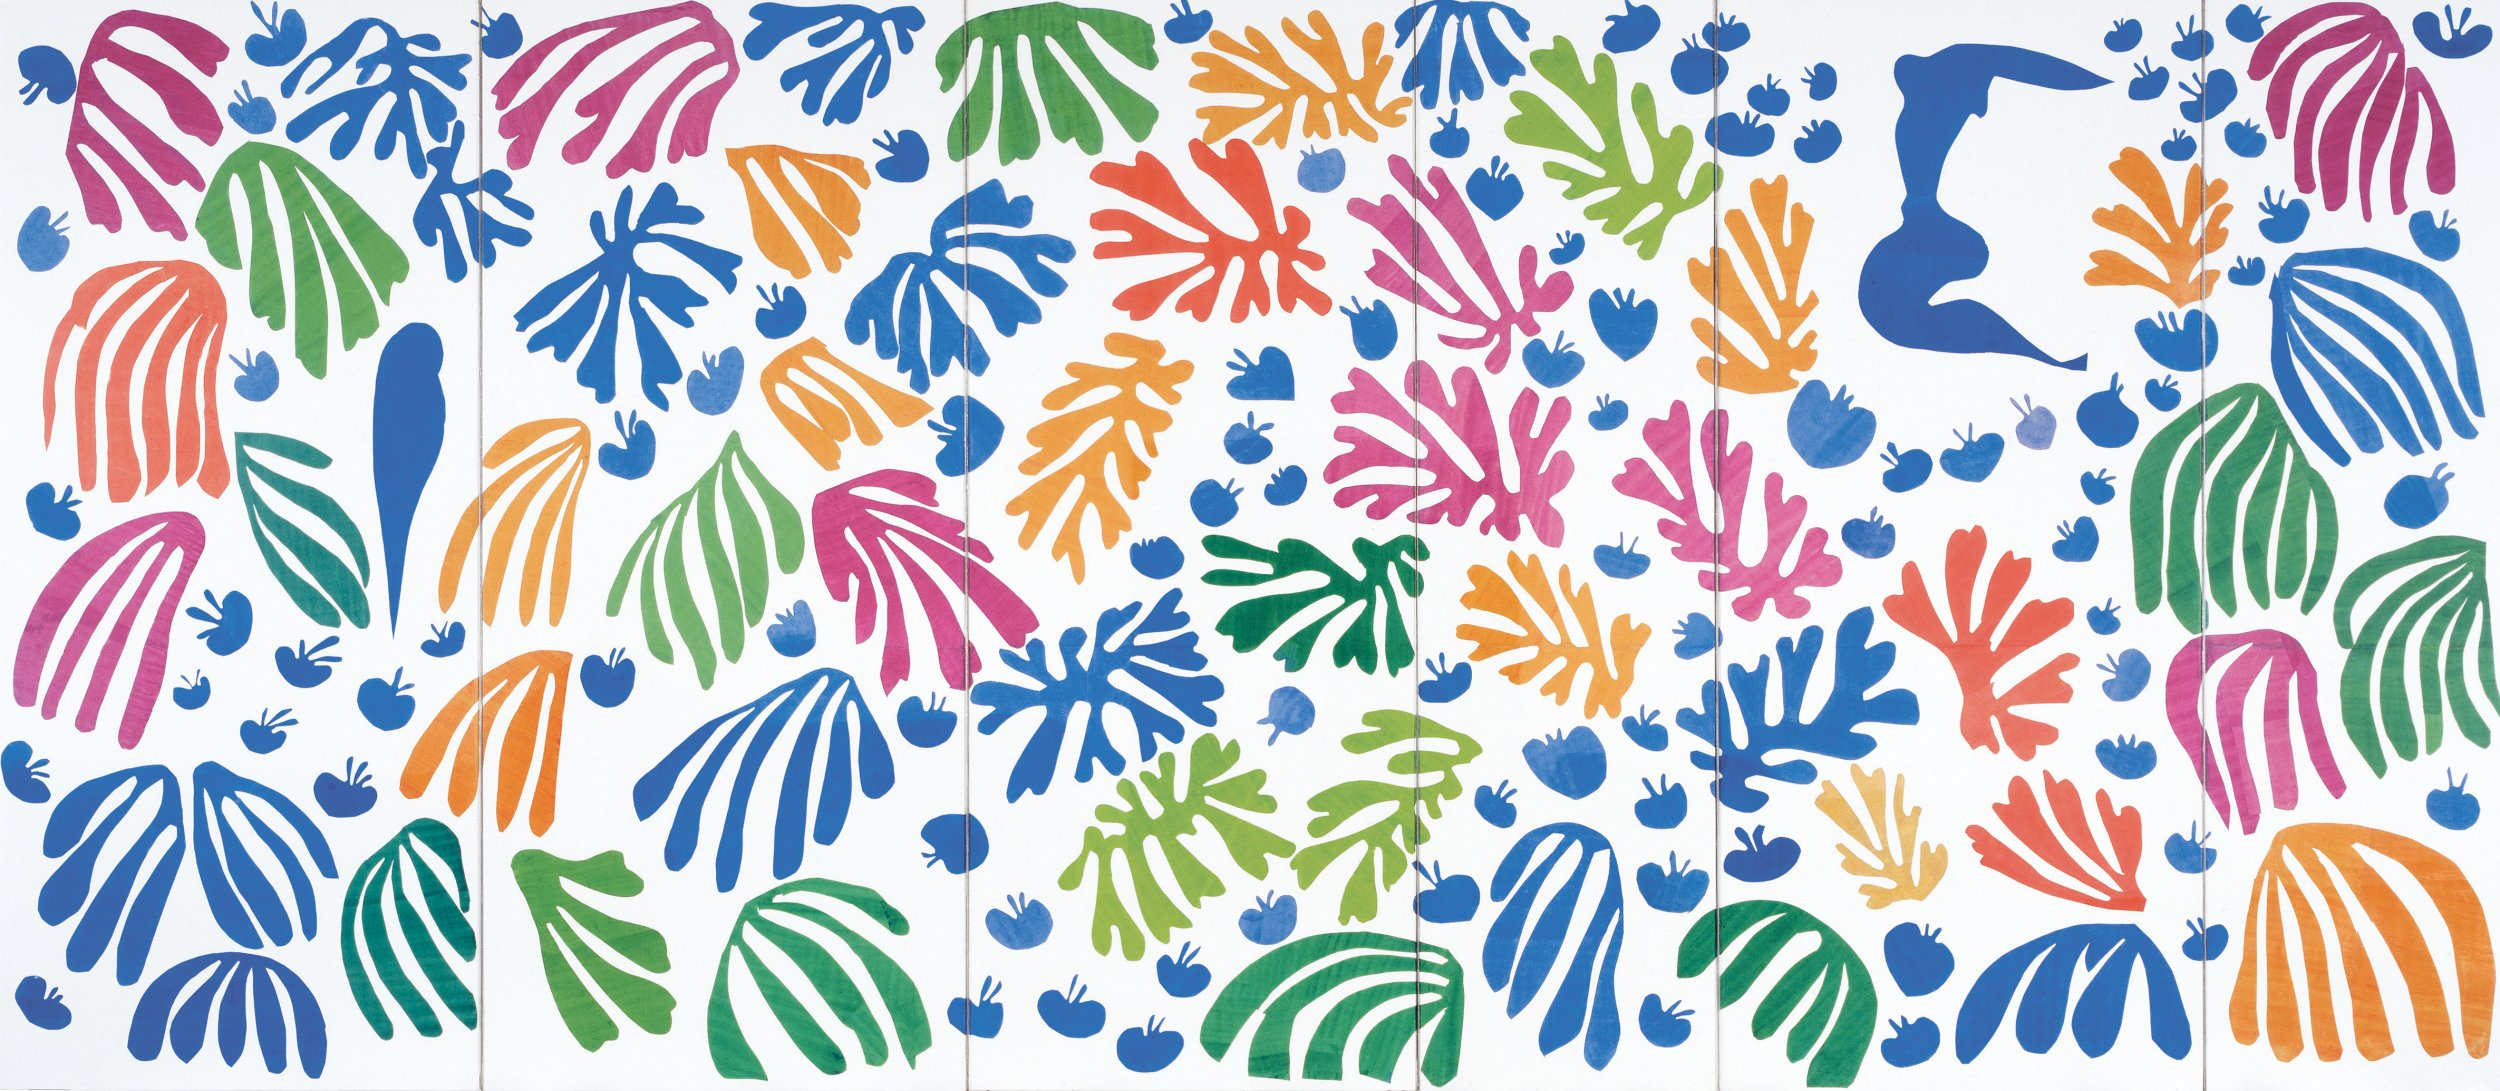 Photos: Henri Matisse Cutouts: The Joy of 'Painting With Scissors'